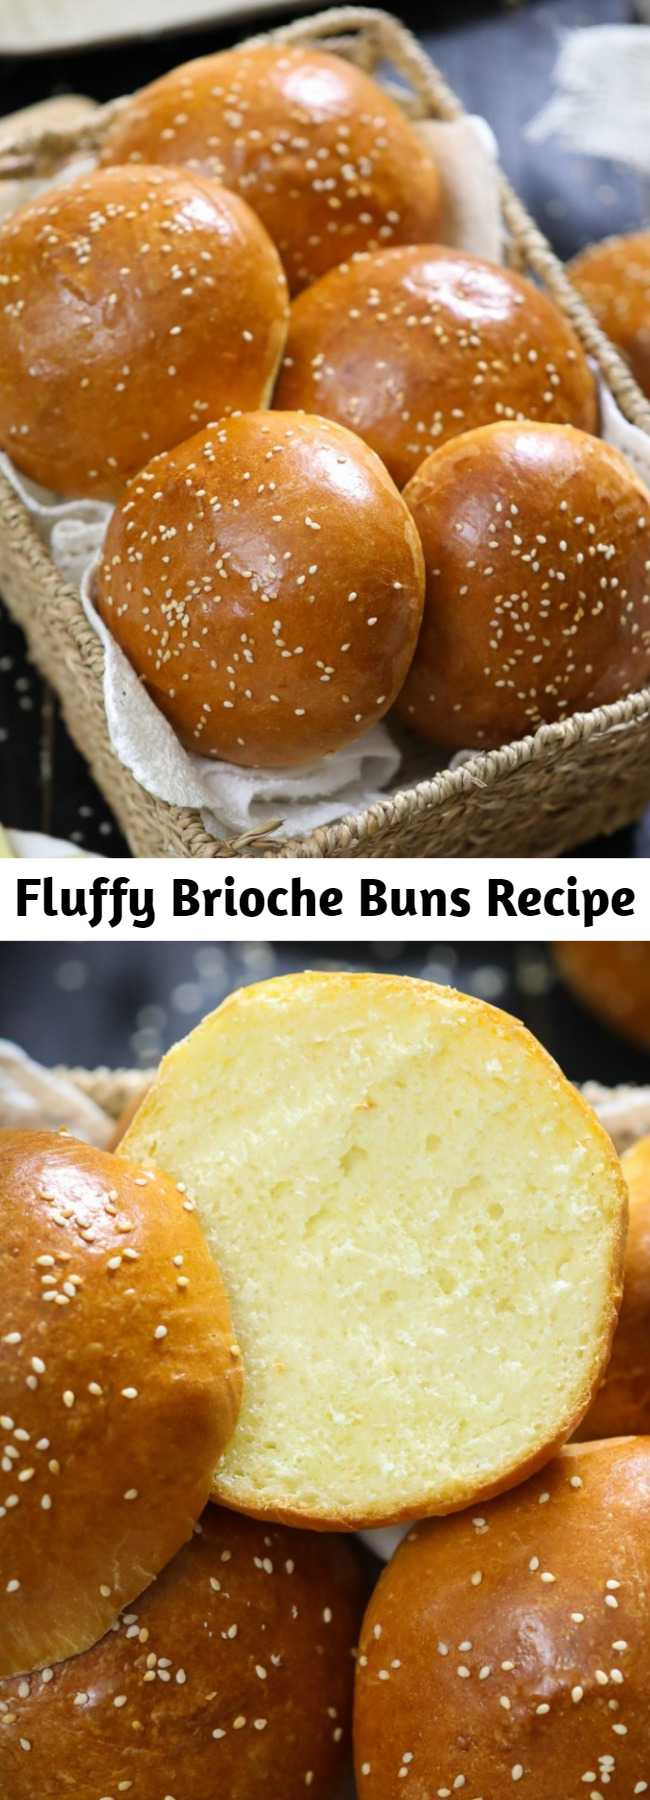 Fluffy Brioche Buns Recipe - These buttery brioche buns are so fluffy and perfect for any burger or sandwich. The moment you sink your teeth into the brioche rolls you'll fall in love! #briochebuns #brioche #briocherecipe #burgerbuns #briocherolls